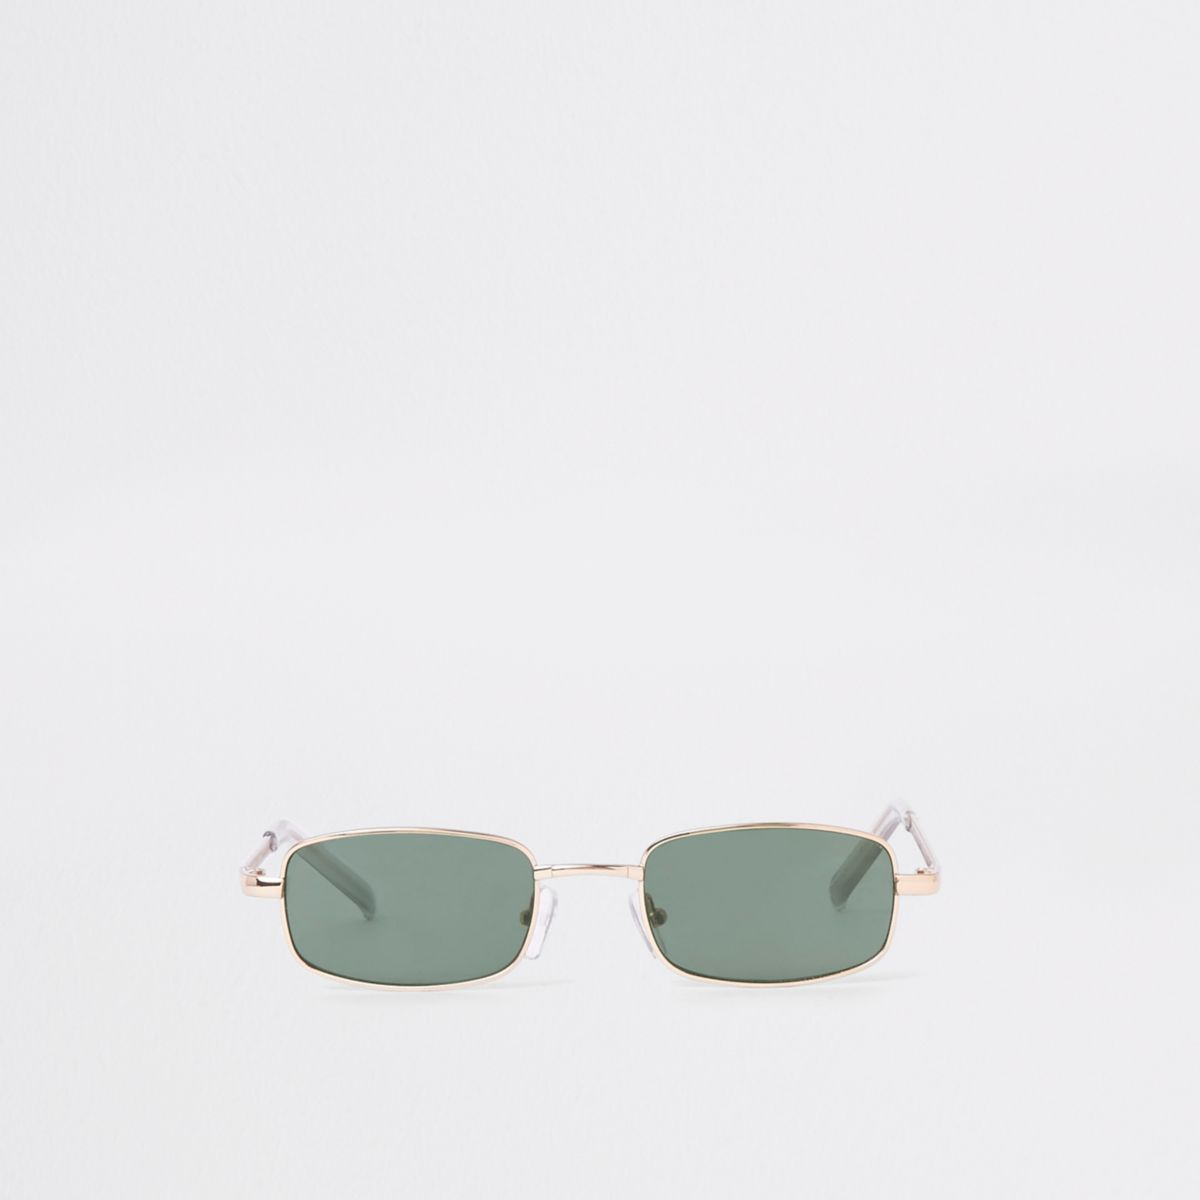 Gold tone narrow lens sunglasses